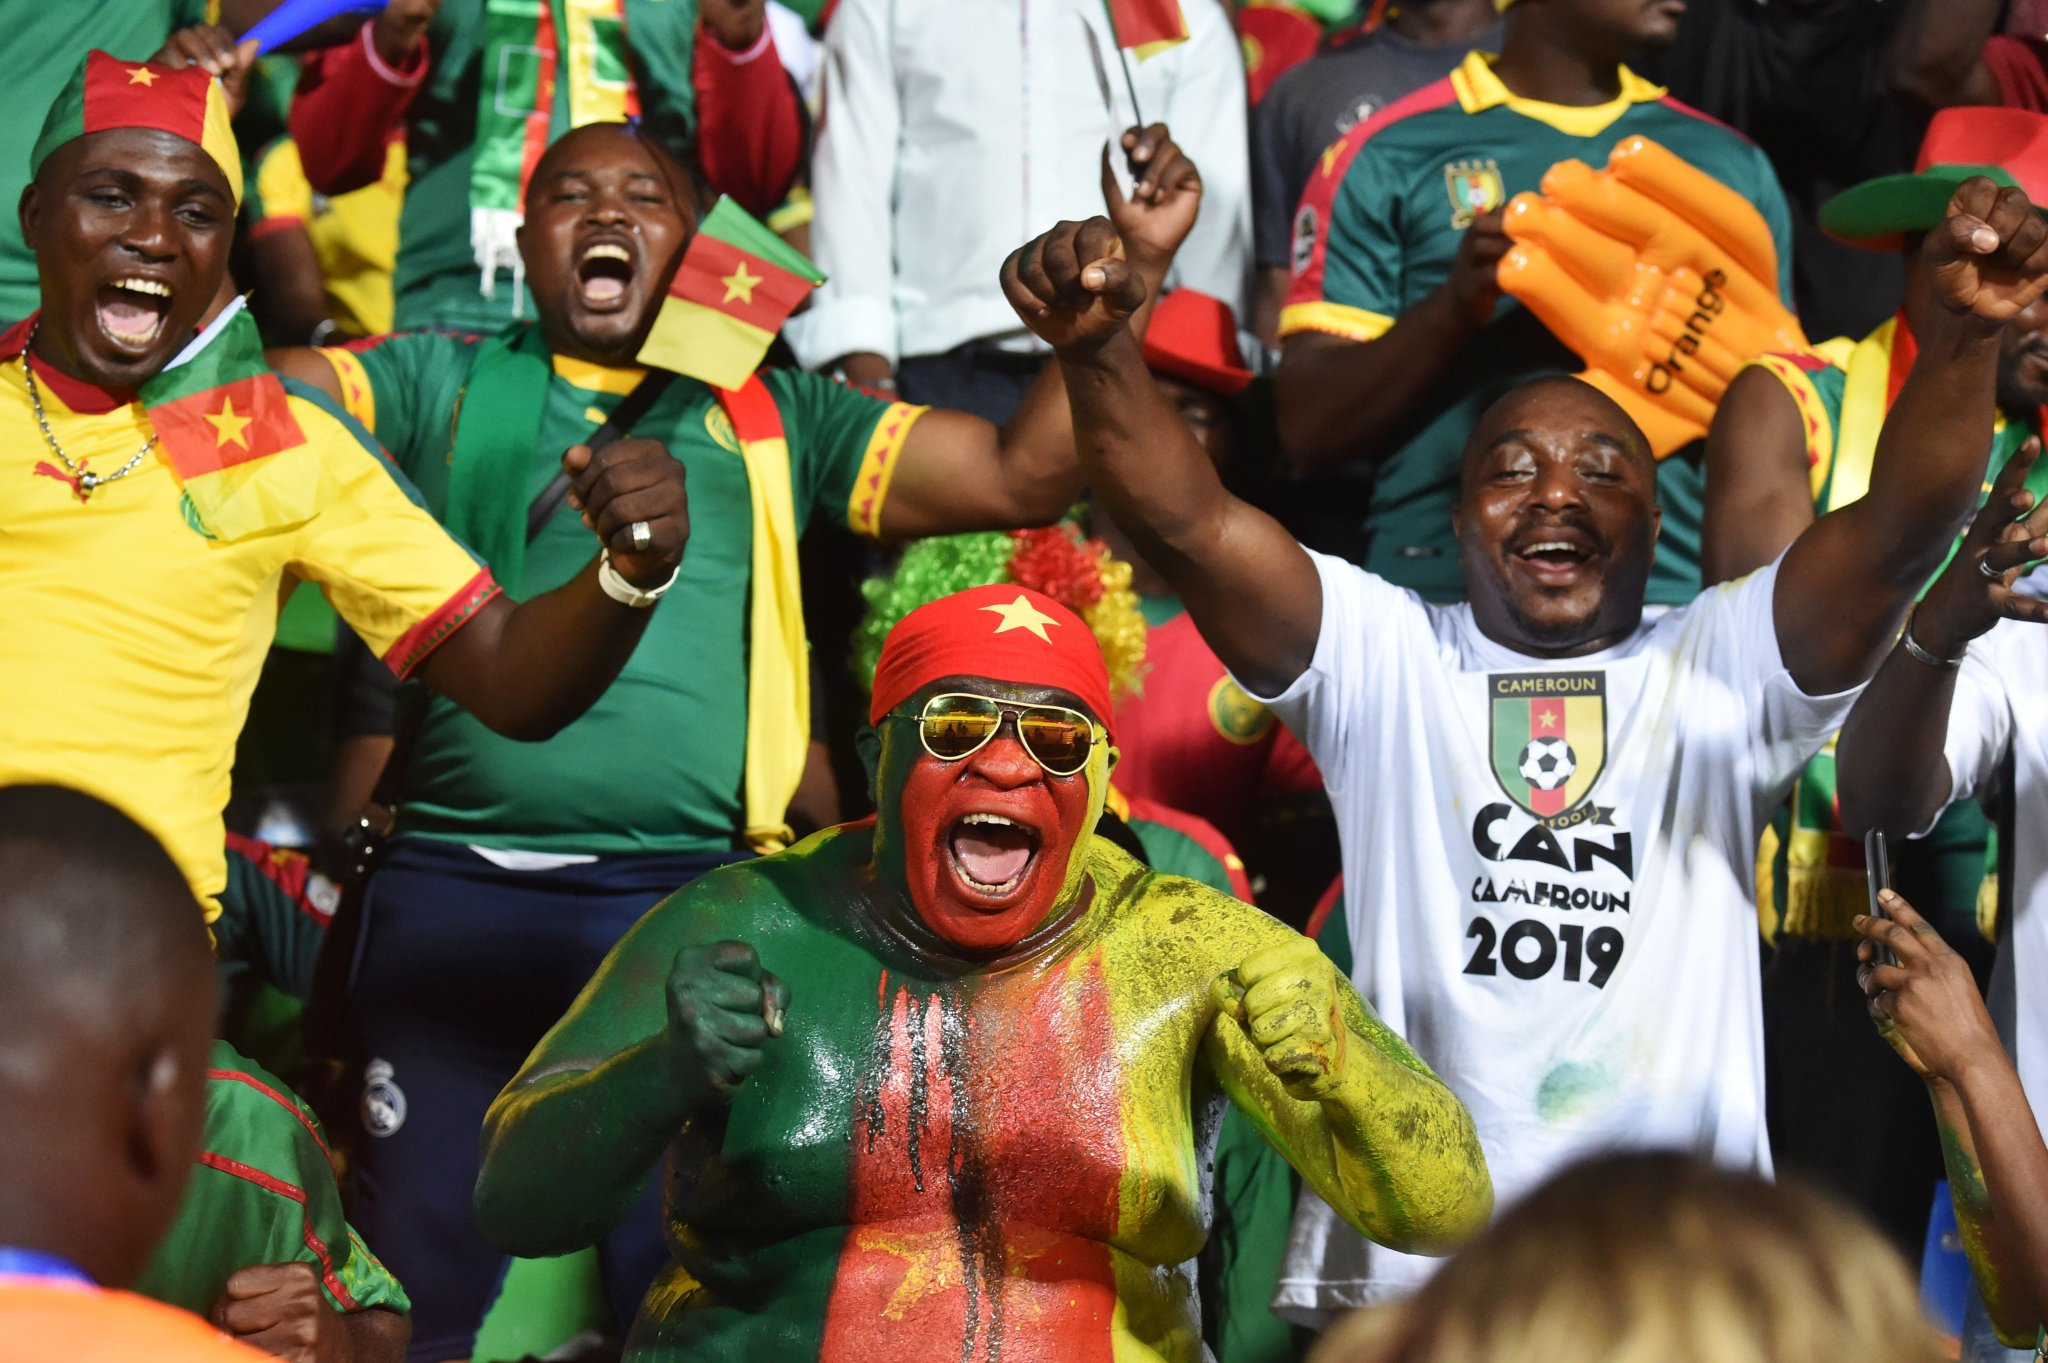 Cameroon: We're Capable Of Hosting Successful AFCON